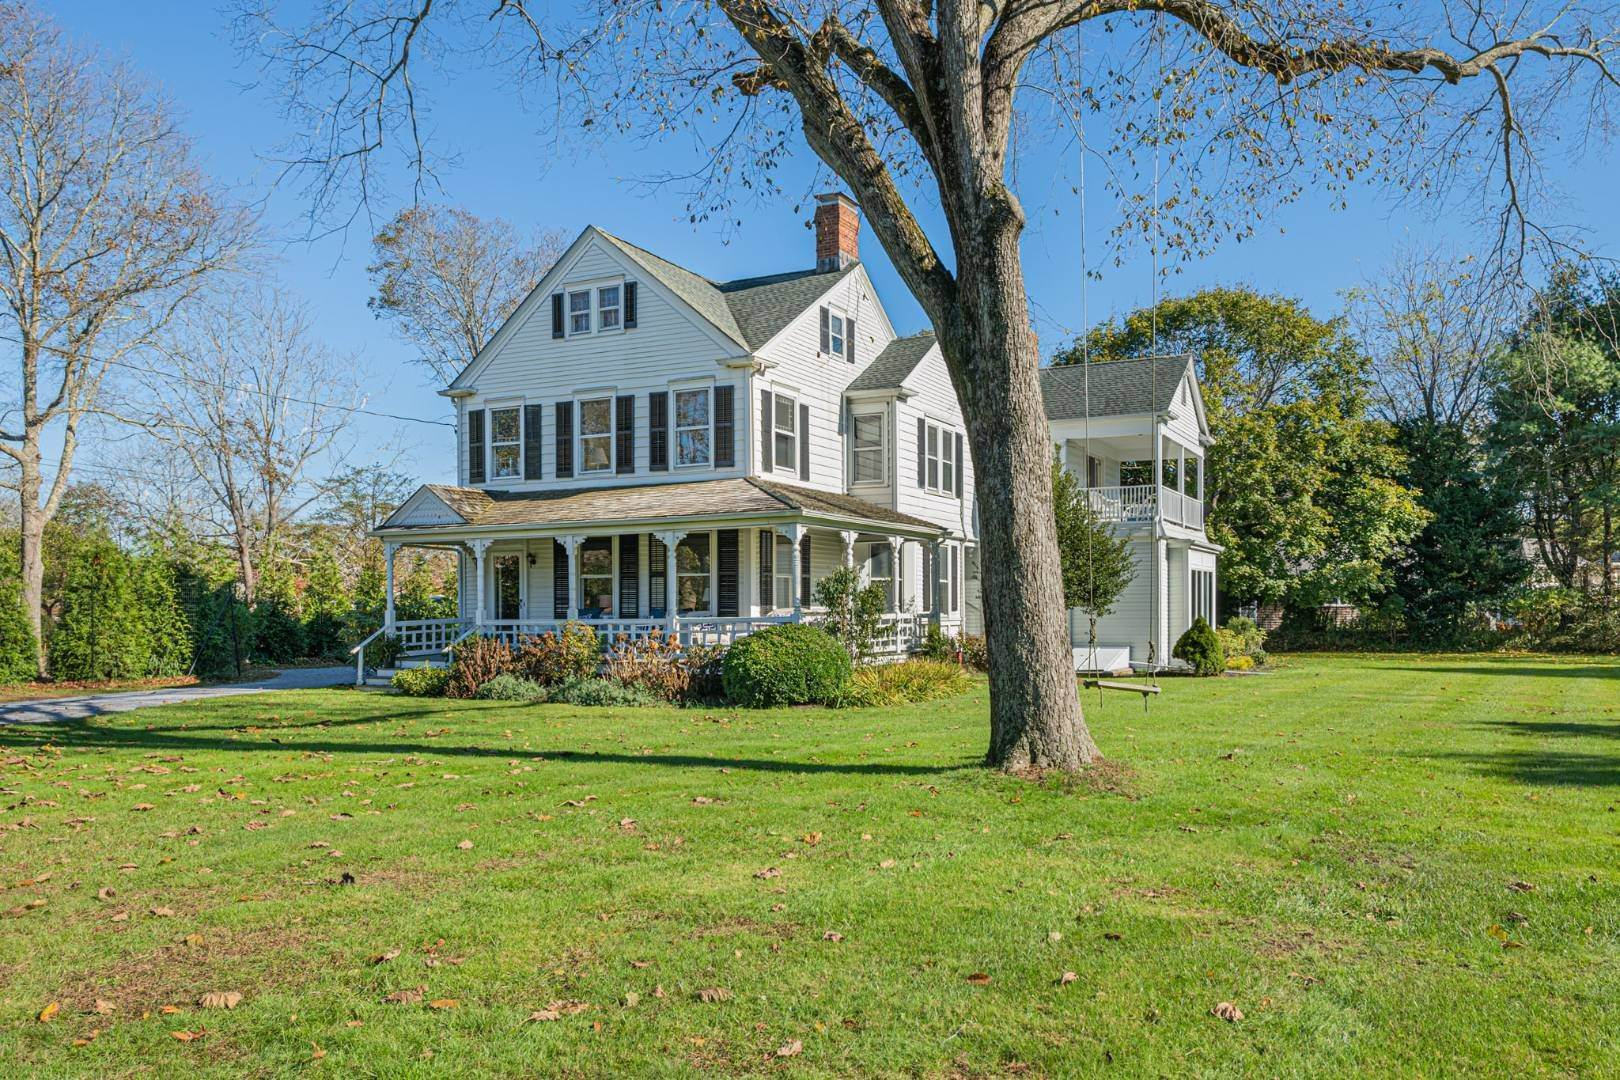 Single Family Home for Sale at Historic Victorian On Quogue Street 81 Quogue Street, Quogue Village, NY 11959